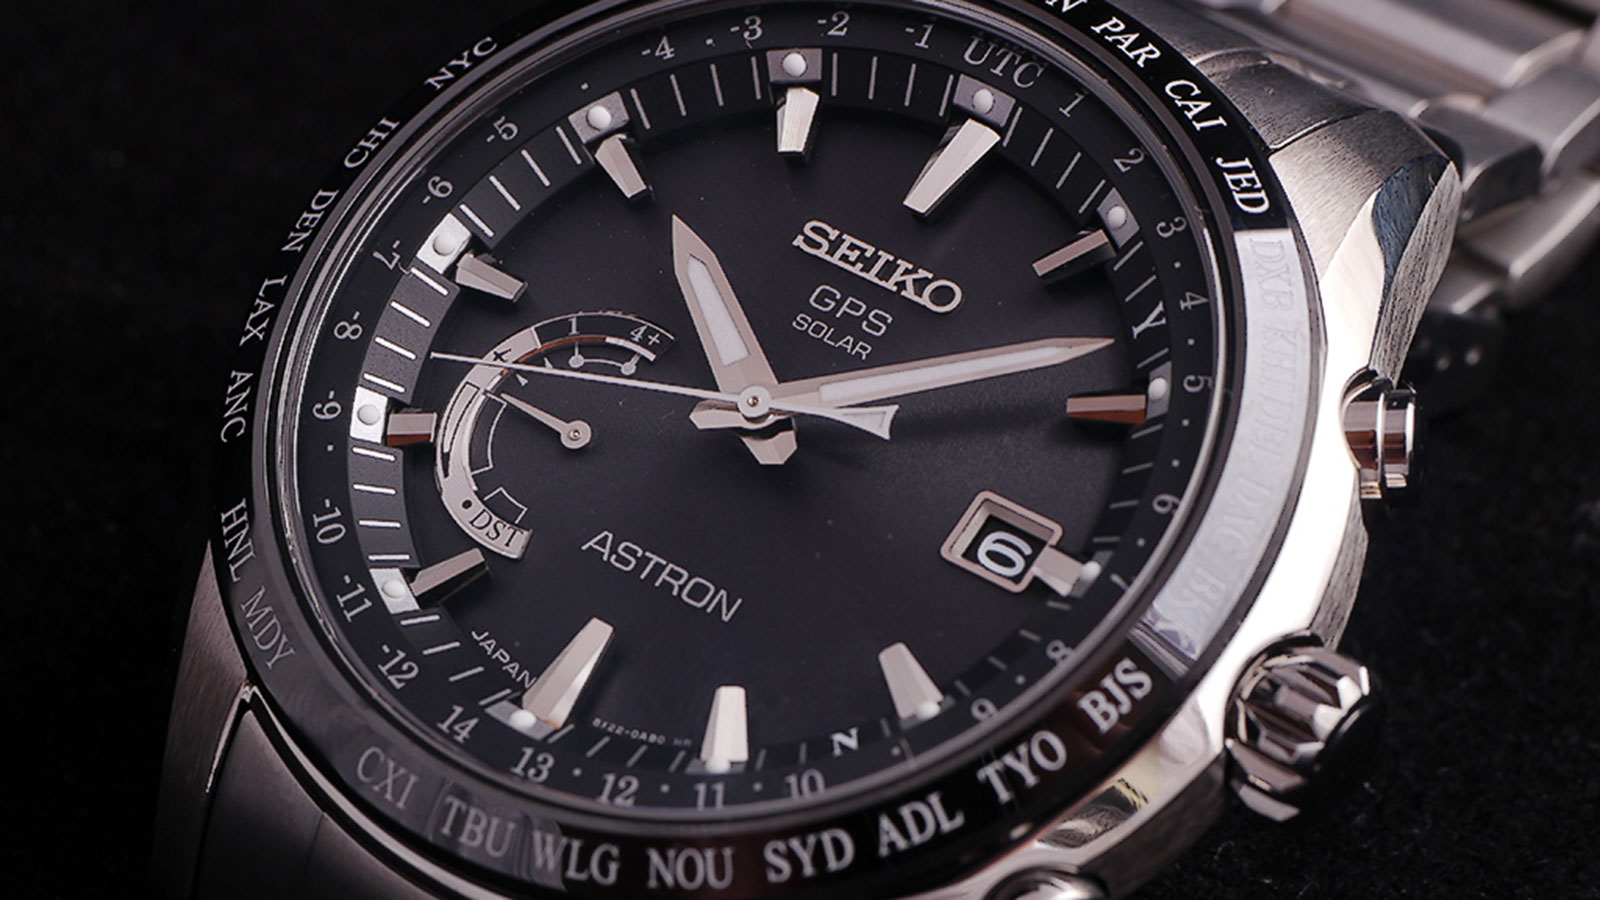 SEIKO CALIBER 8X22 MEN'S WATCH